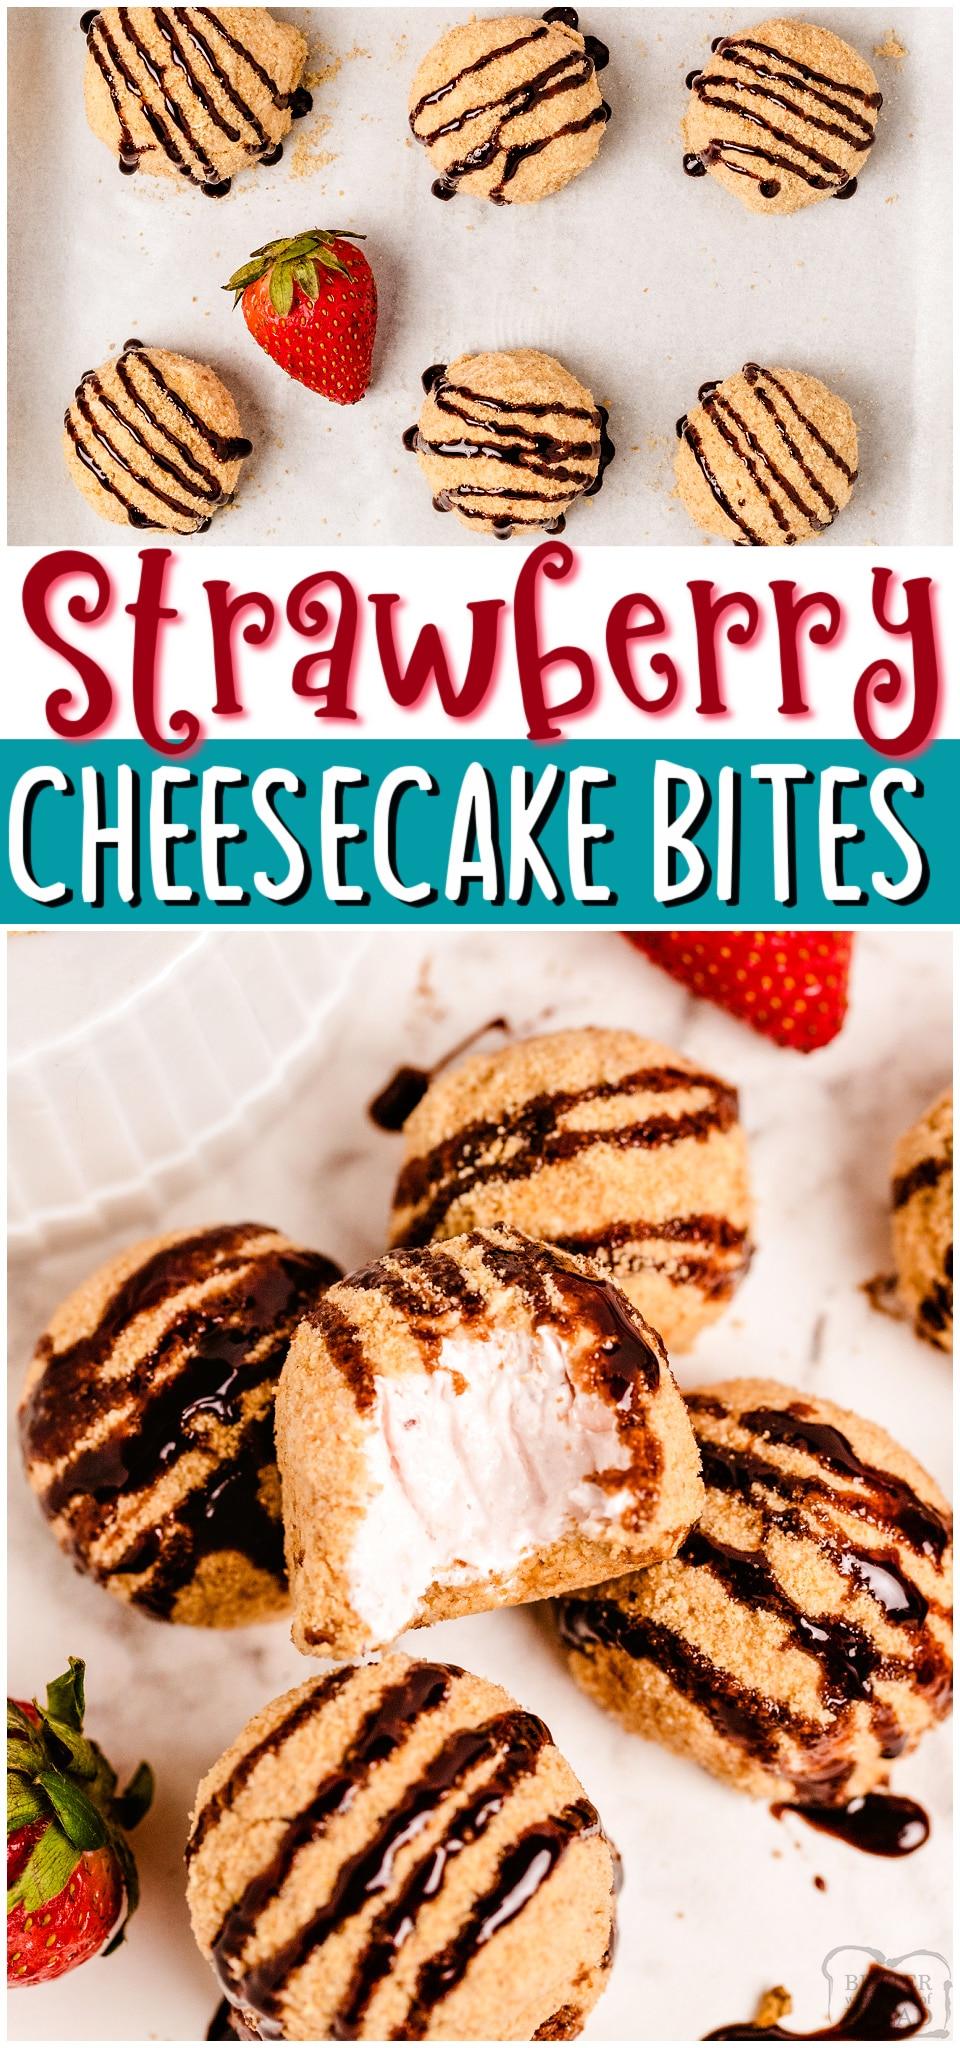 Easy Strawberry Cheesecake Bites made with fresh strawberries & cream cheese; rolled into bite-sized morsels and coated with graham cracker crumbs. Tasty strawberry cheesecake balls drizzled with hot fudge for the perfect party treat!